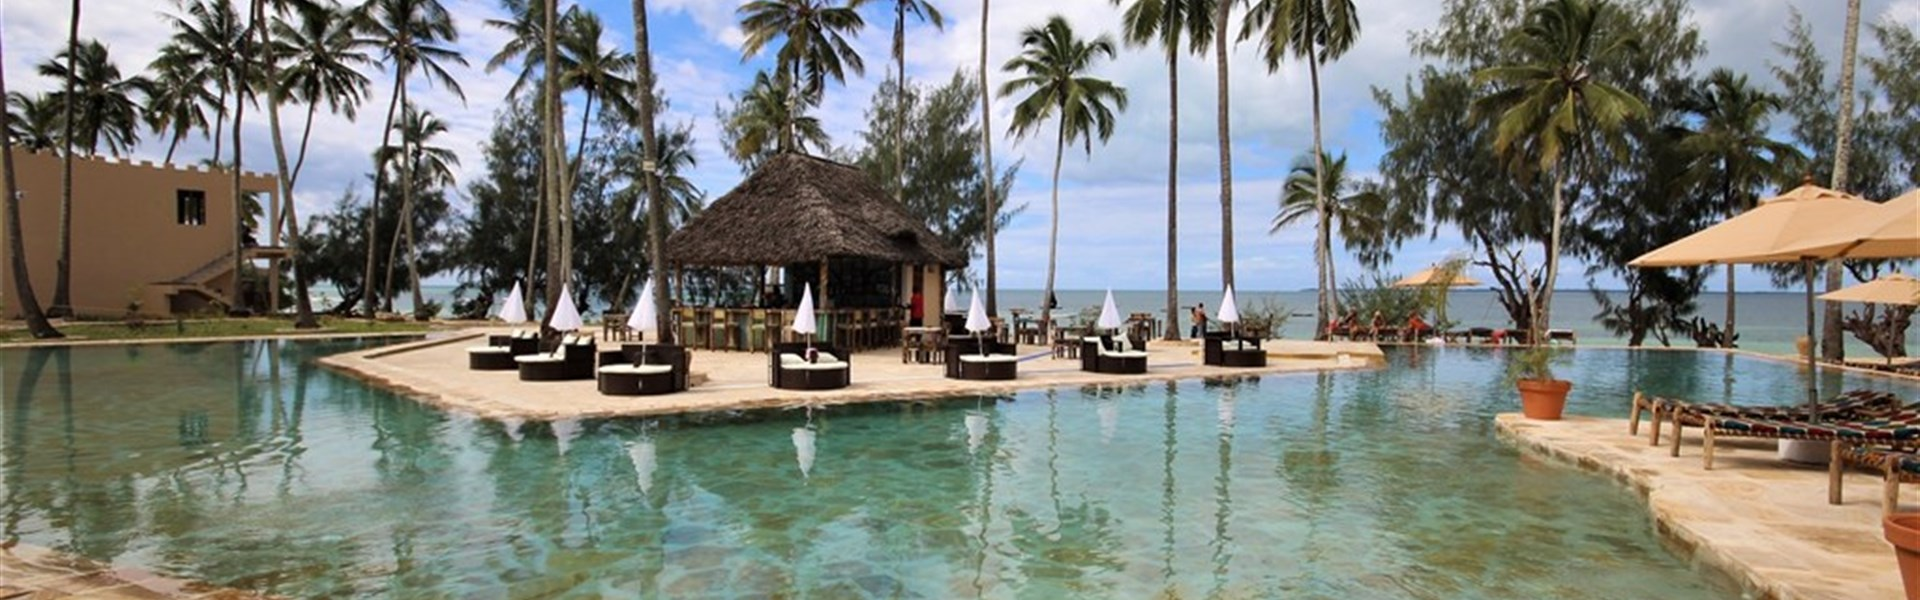 Marco Polo - Zanzibar Bay Resort (4*) -